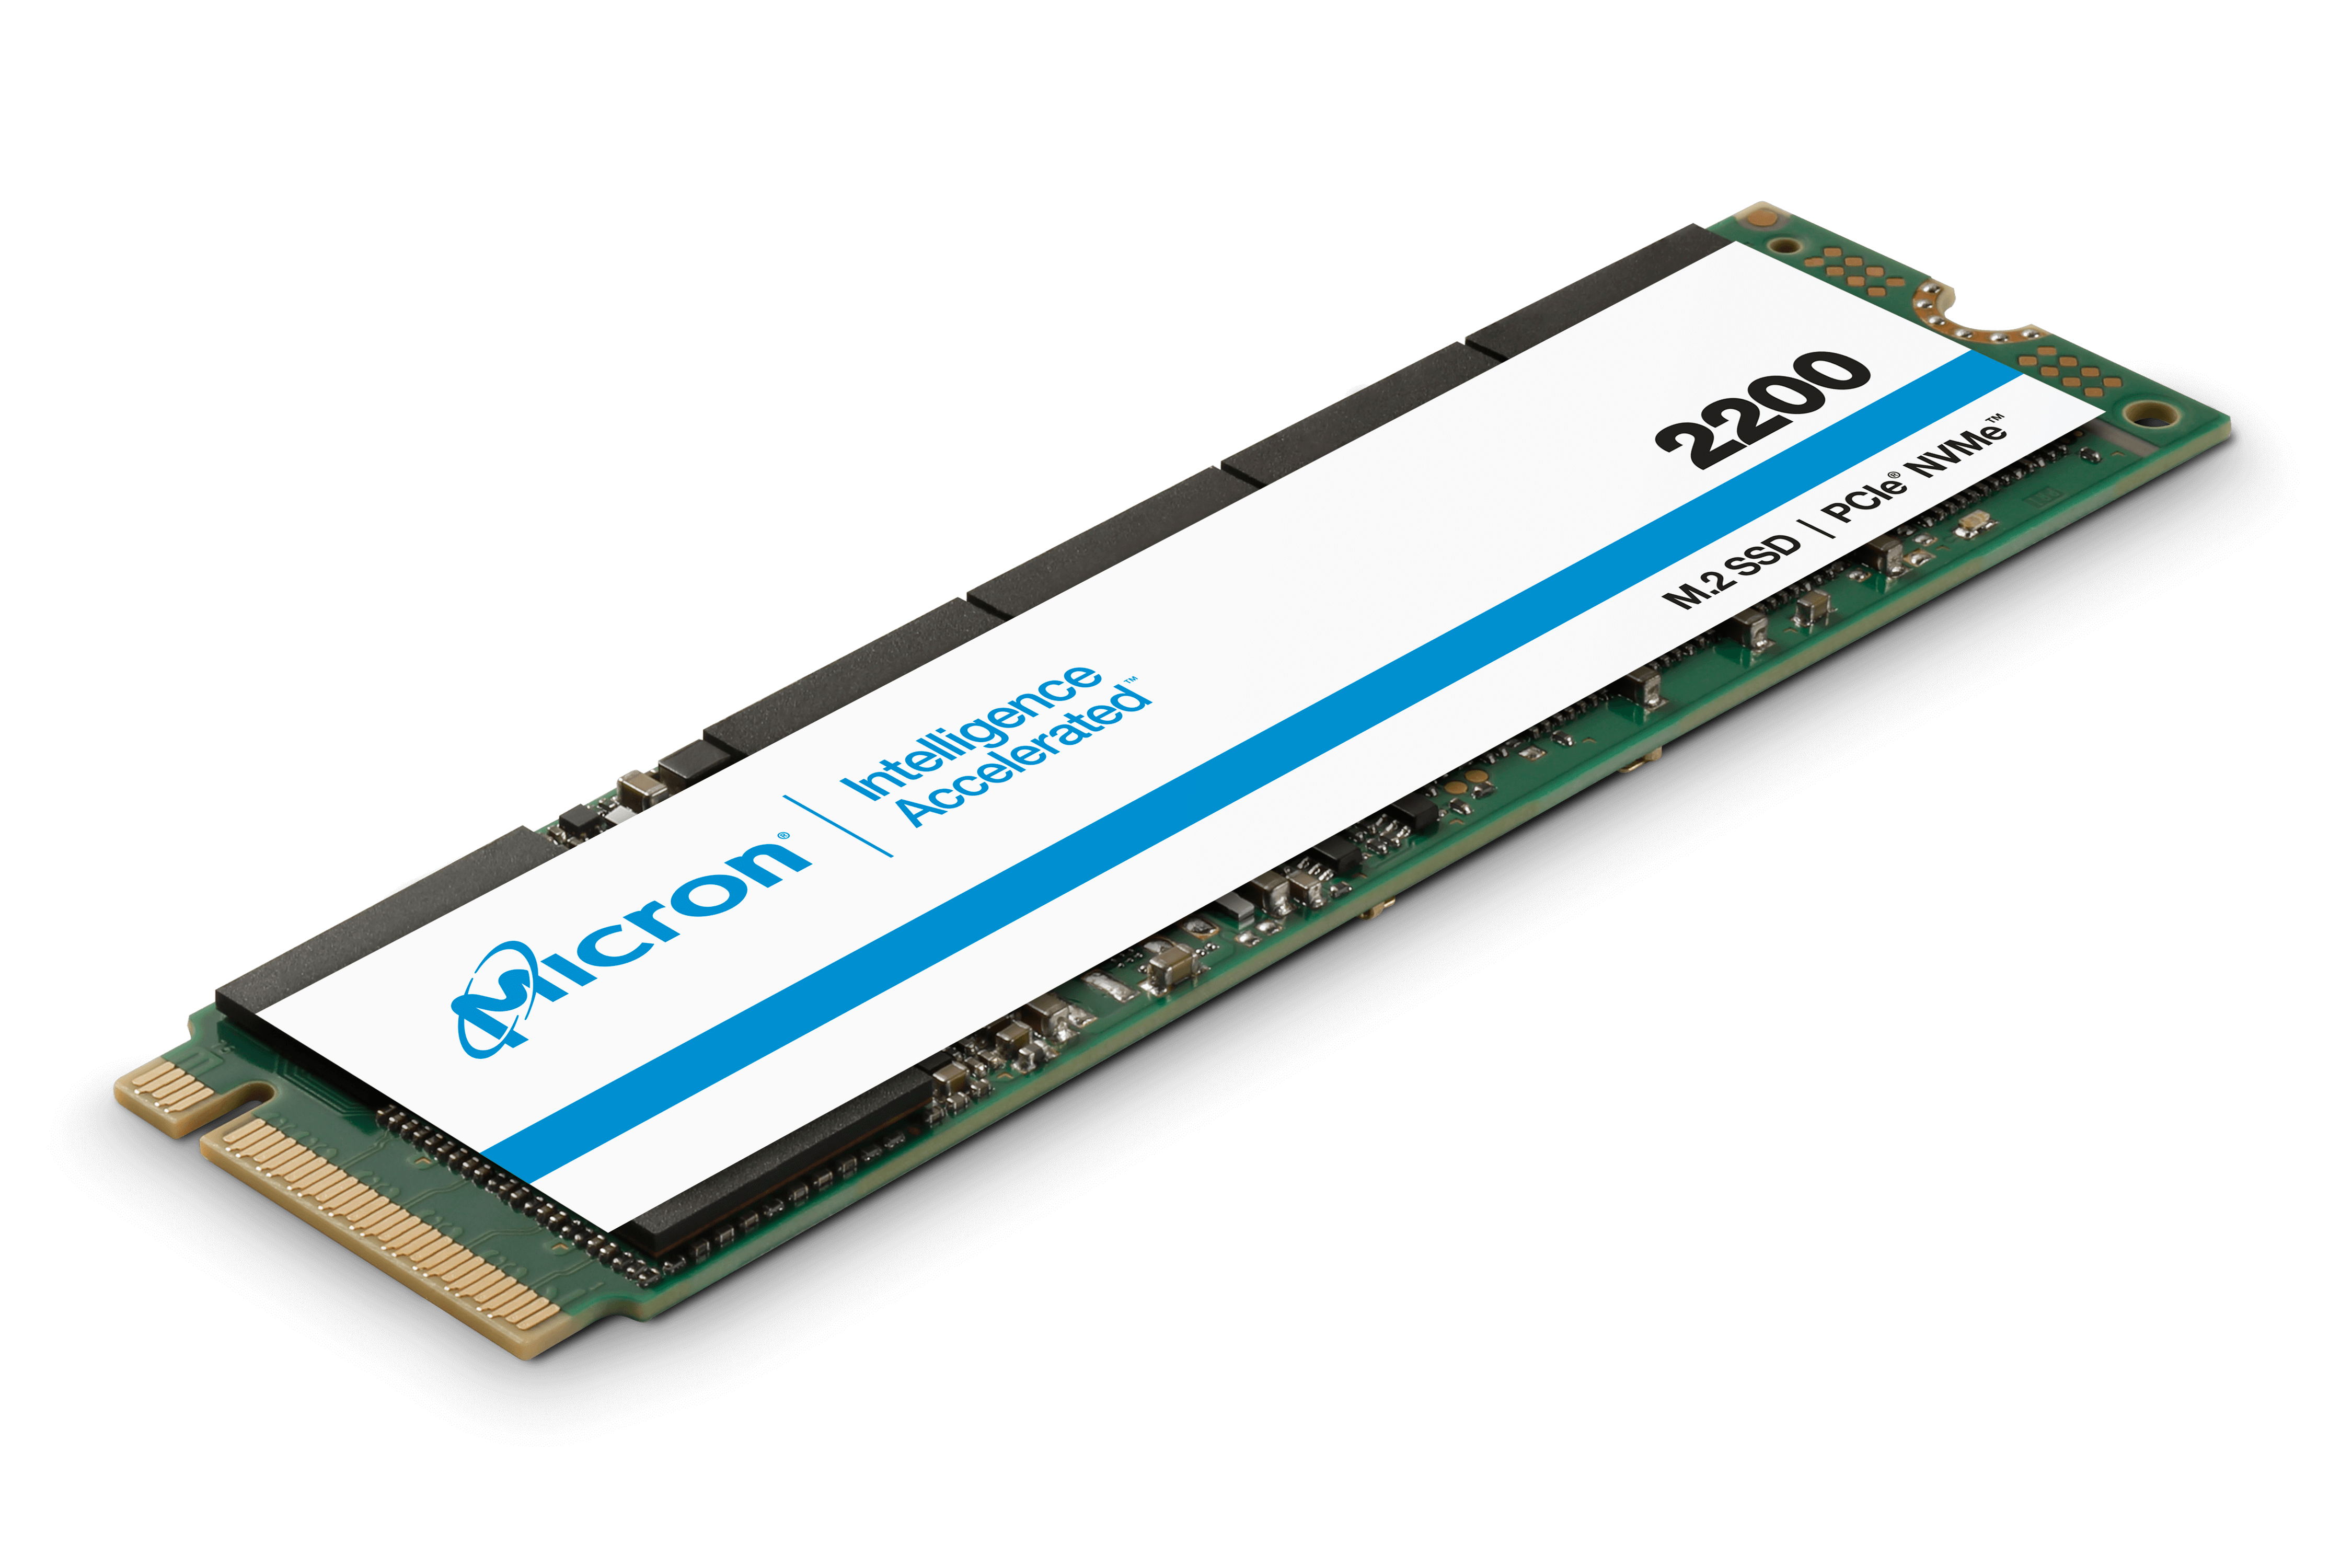 Micron Solid State Drive chip product series 2200 PCIe NVMe